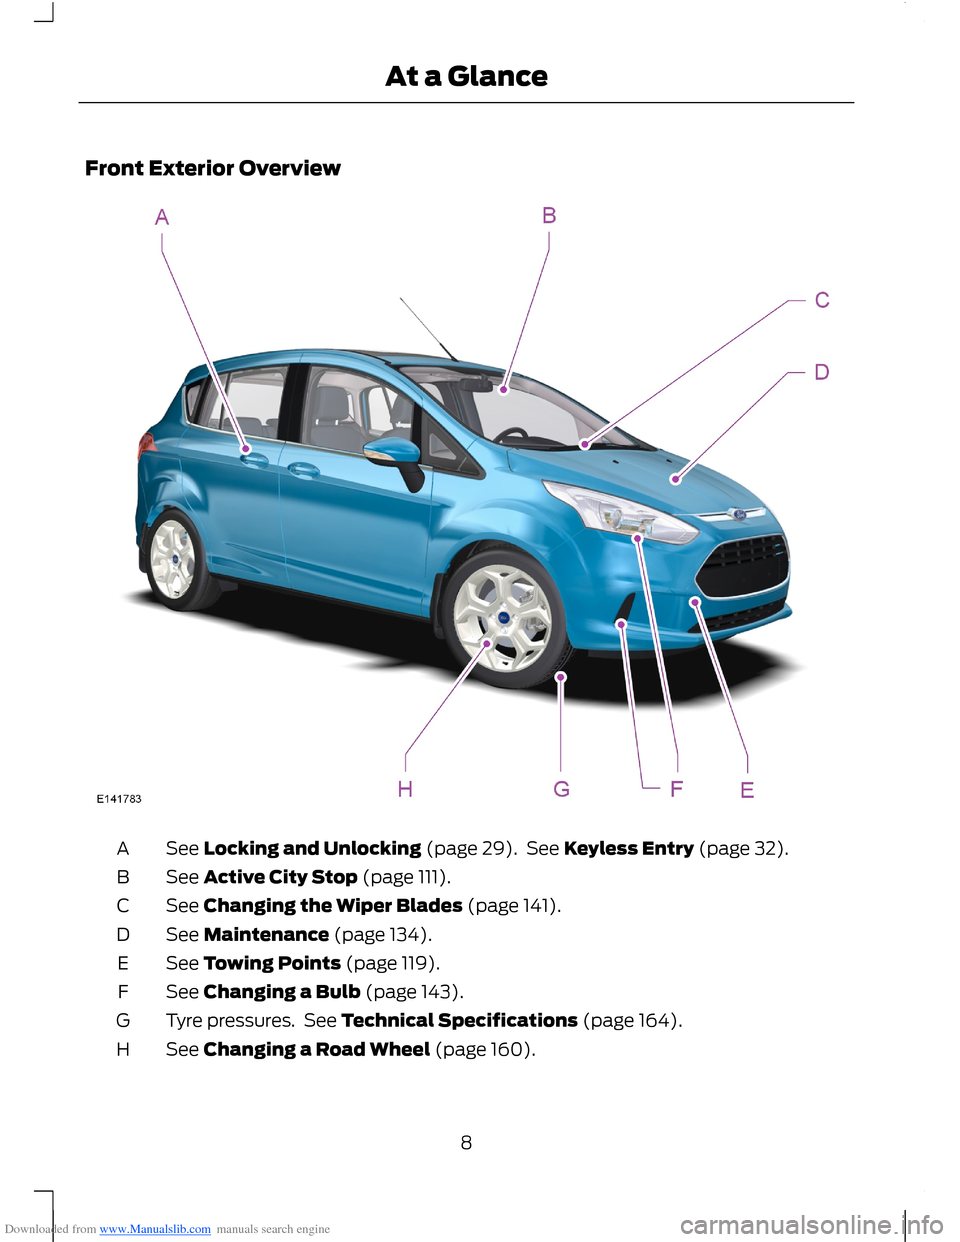 FORD B MAX 2012 1.G Owners Manual, Page 10